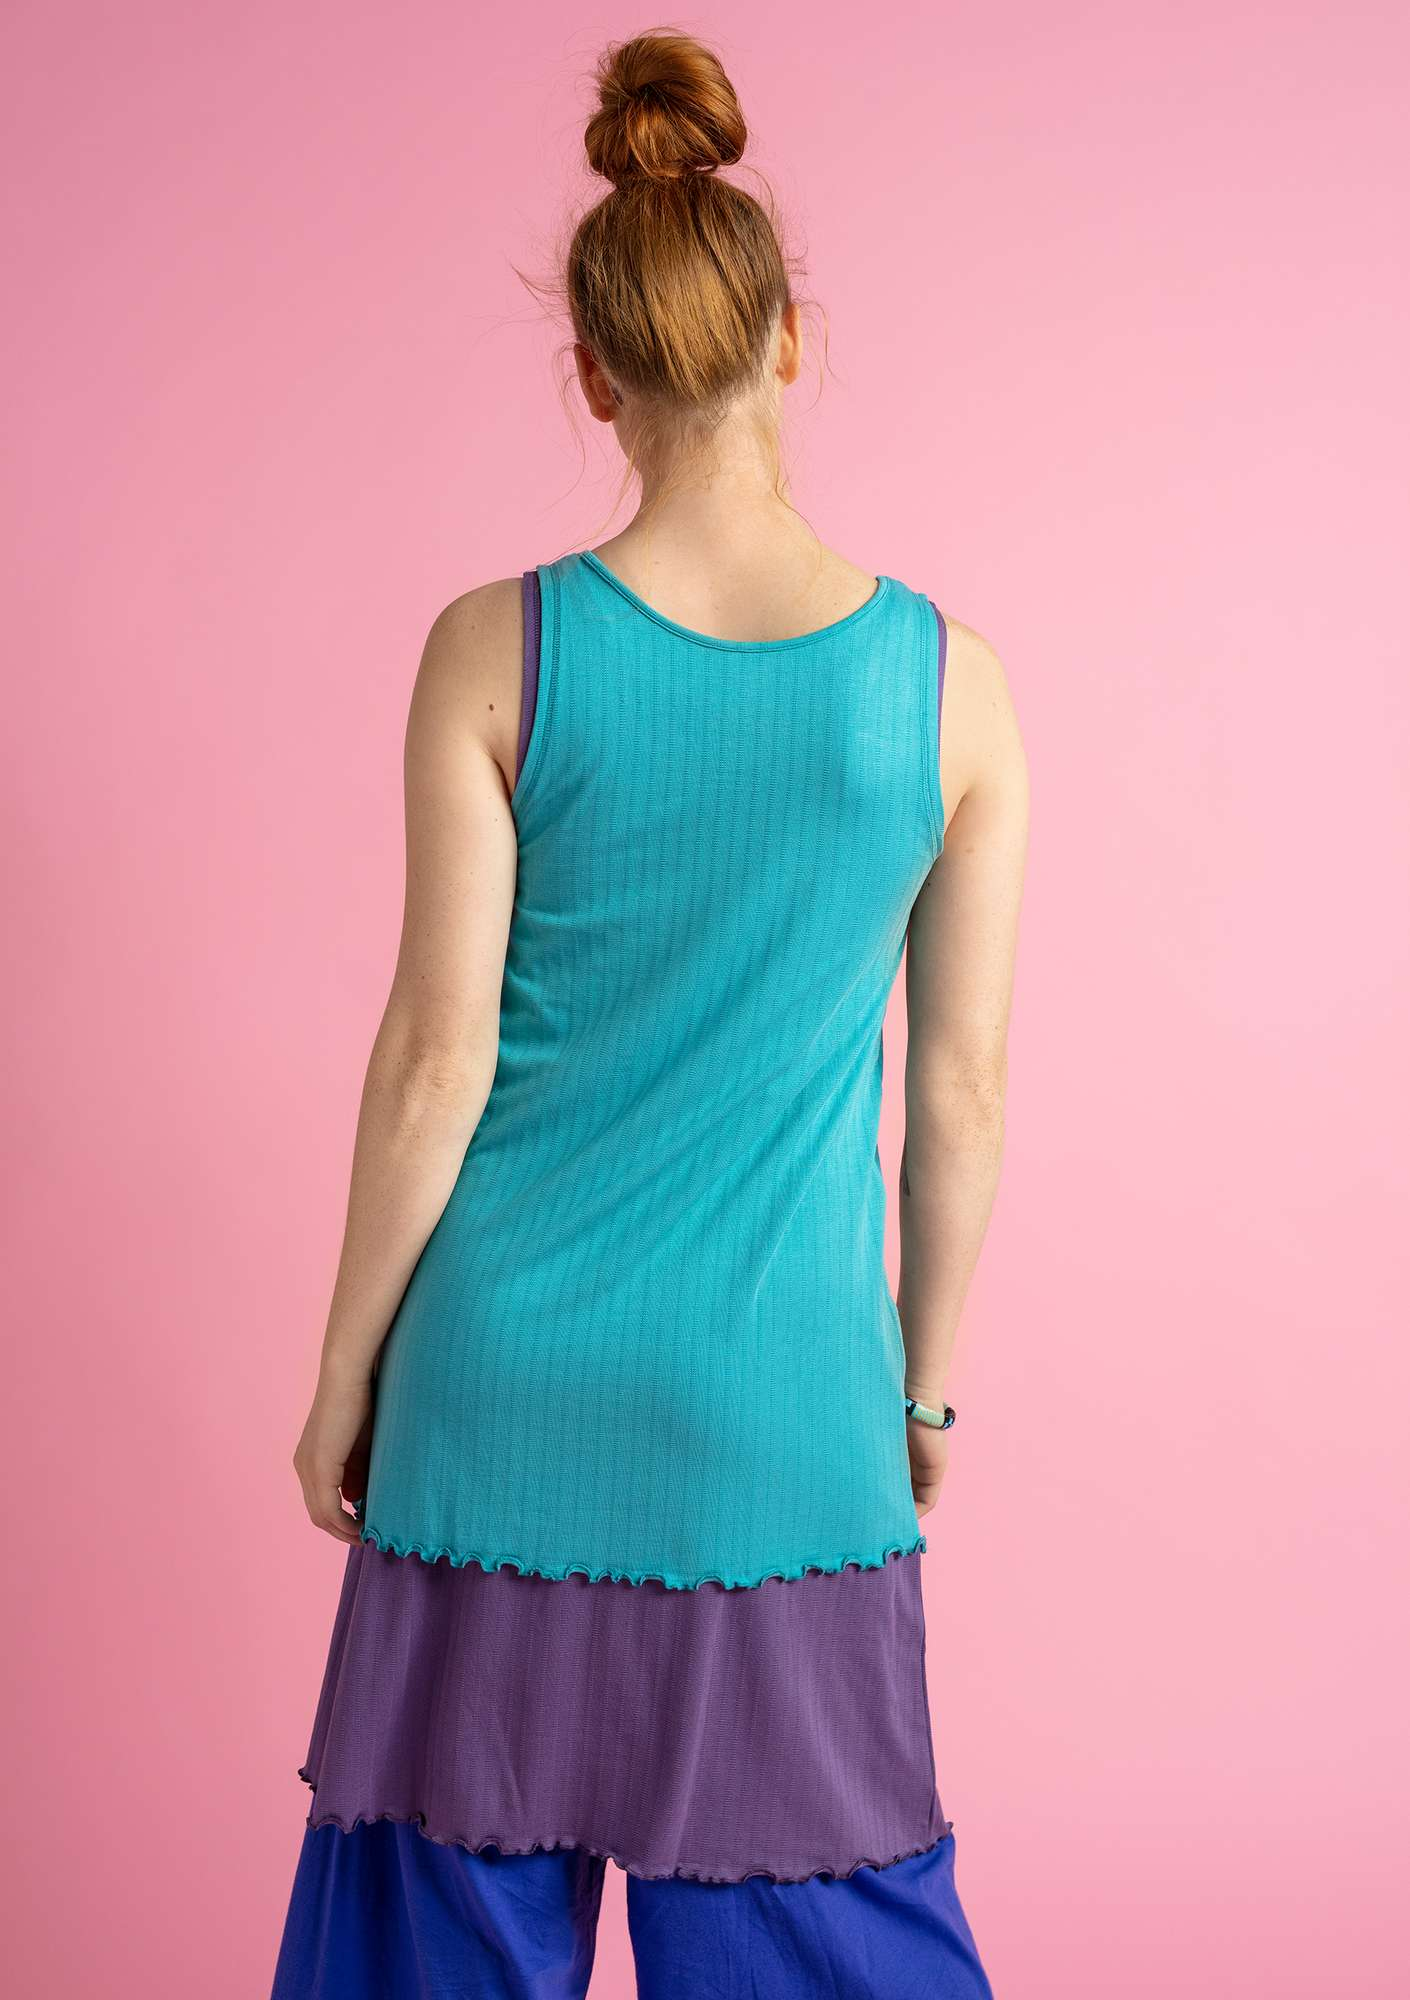 Camisole in micromodal/spandex turquoise